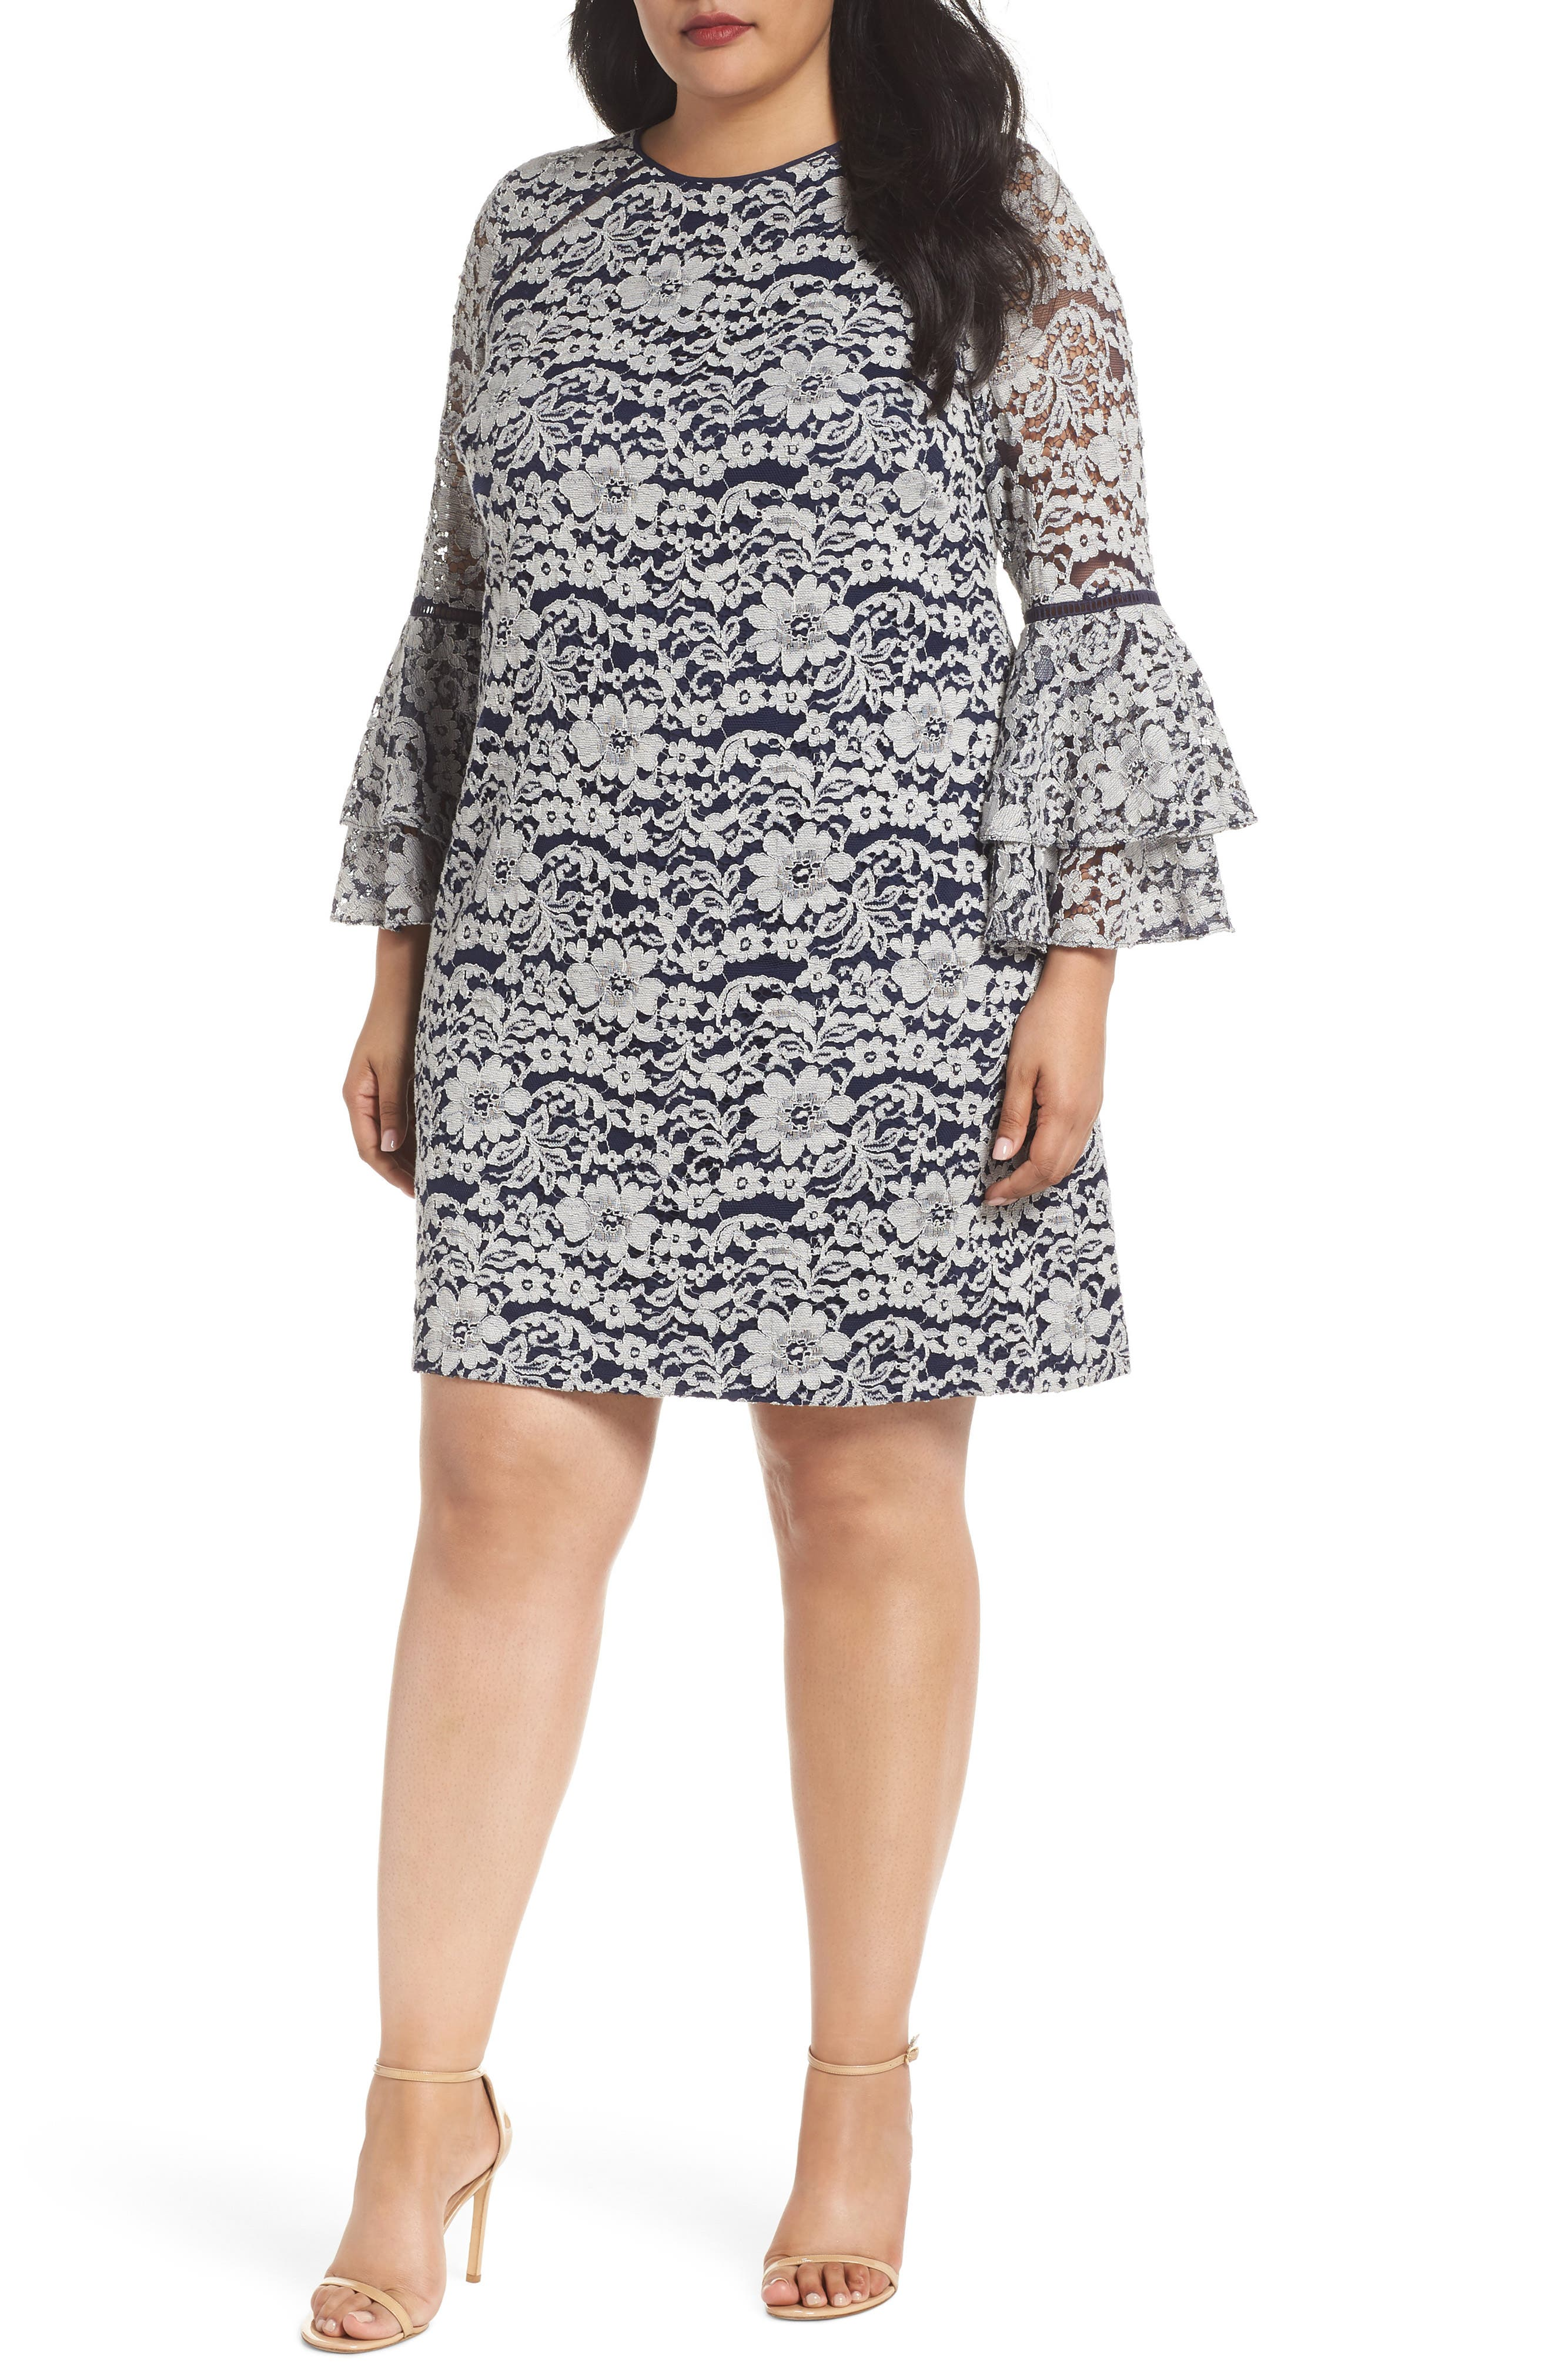 Alternate Image 1 Selected - Chelsea28 Lace Tier Bell Sleeve Shift Dress (Plus Size)